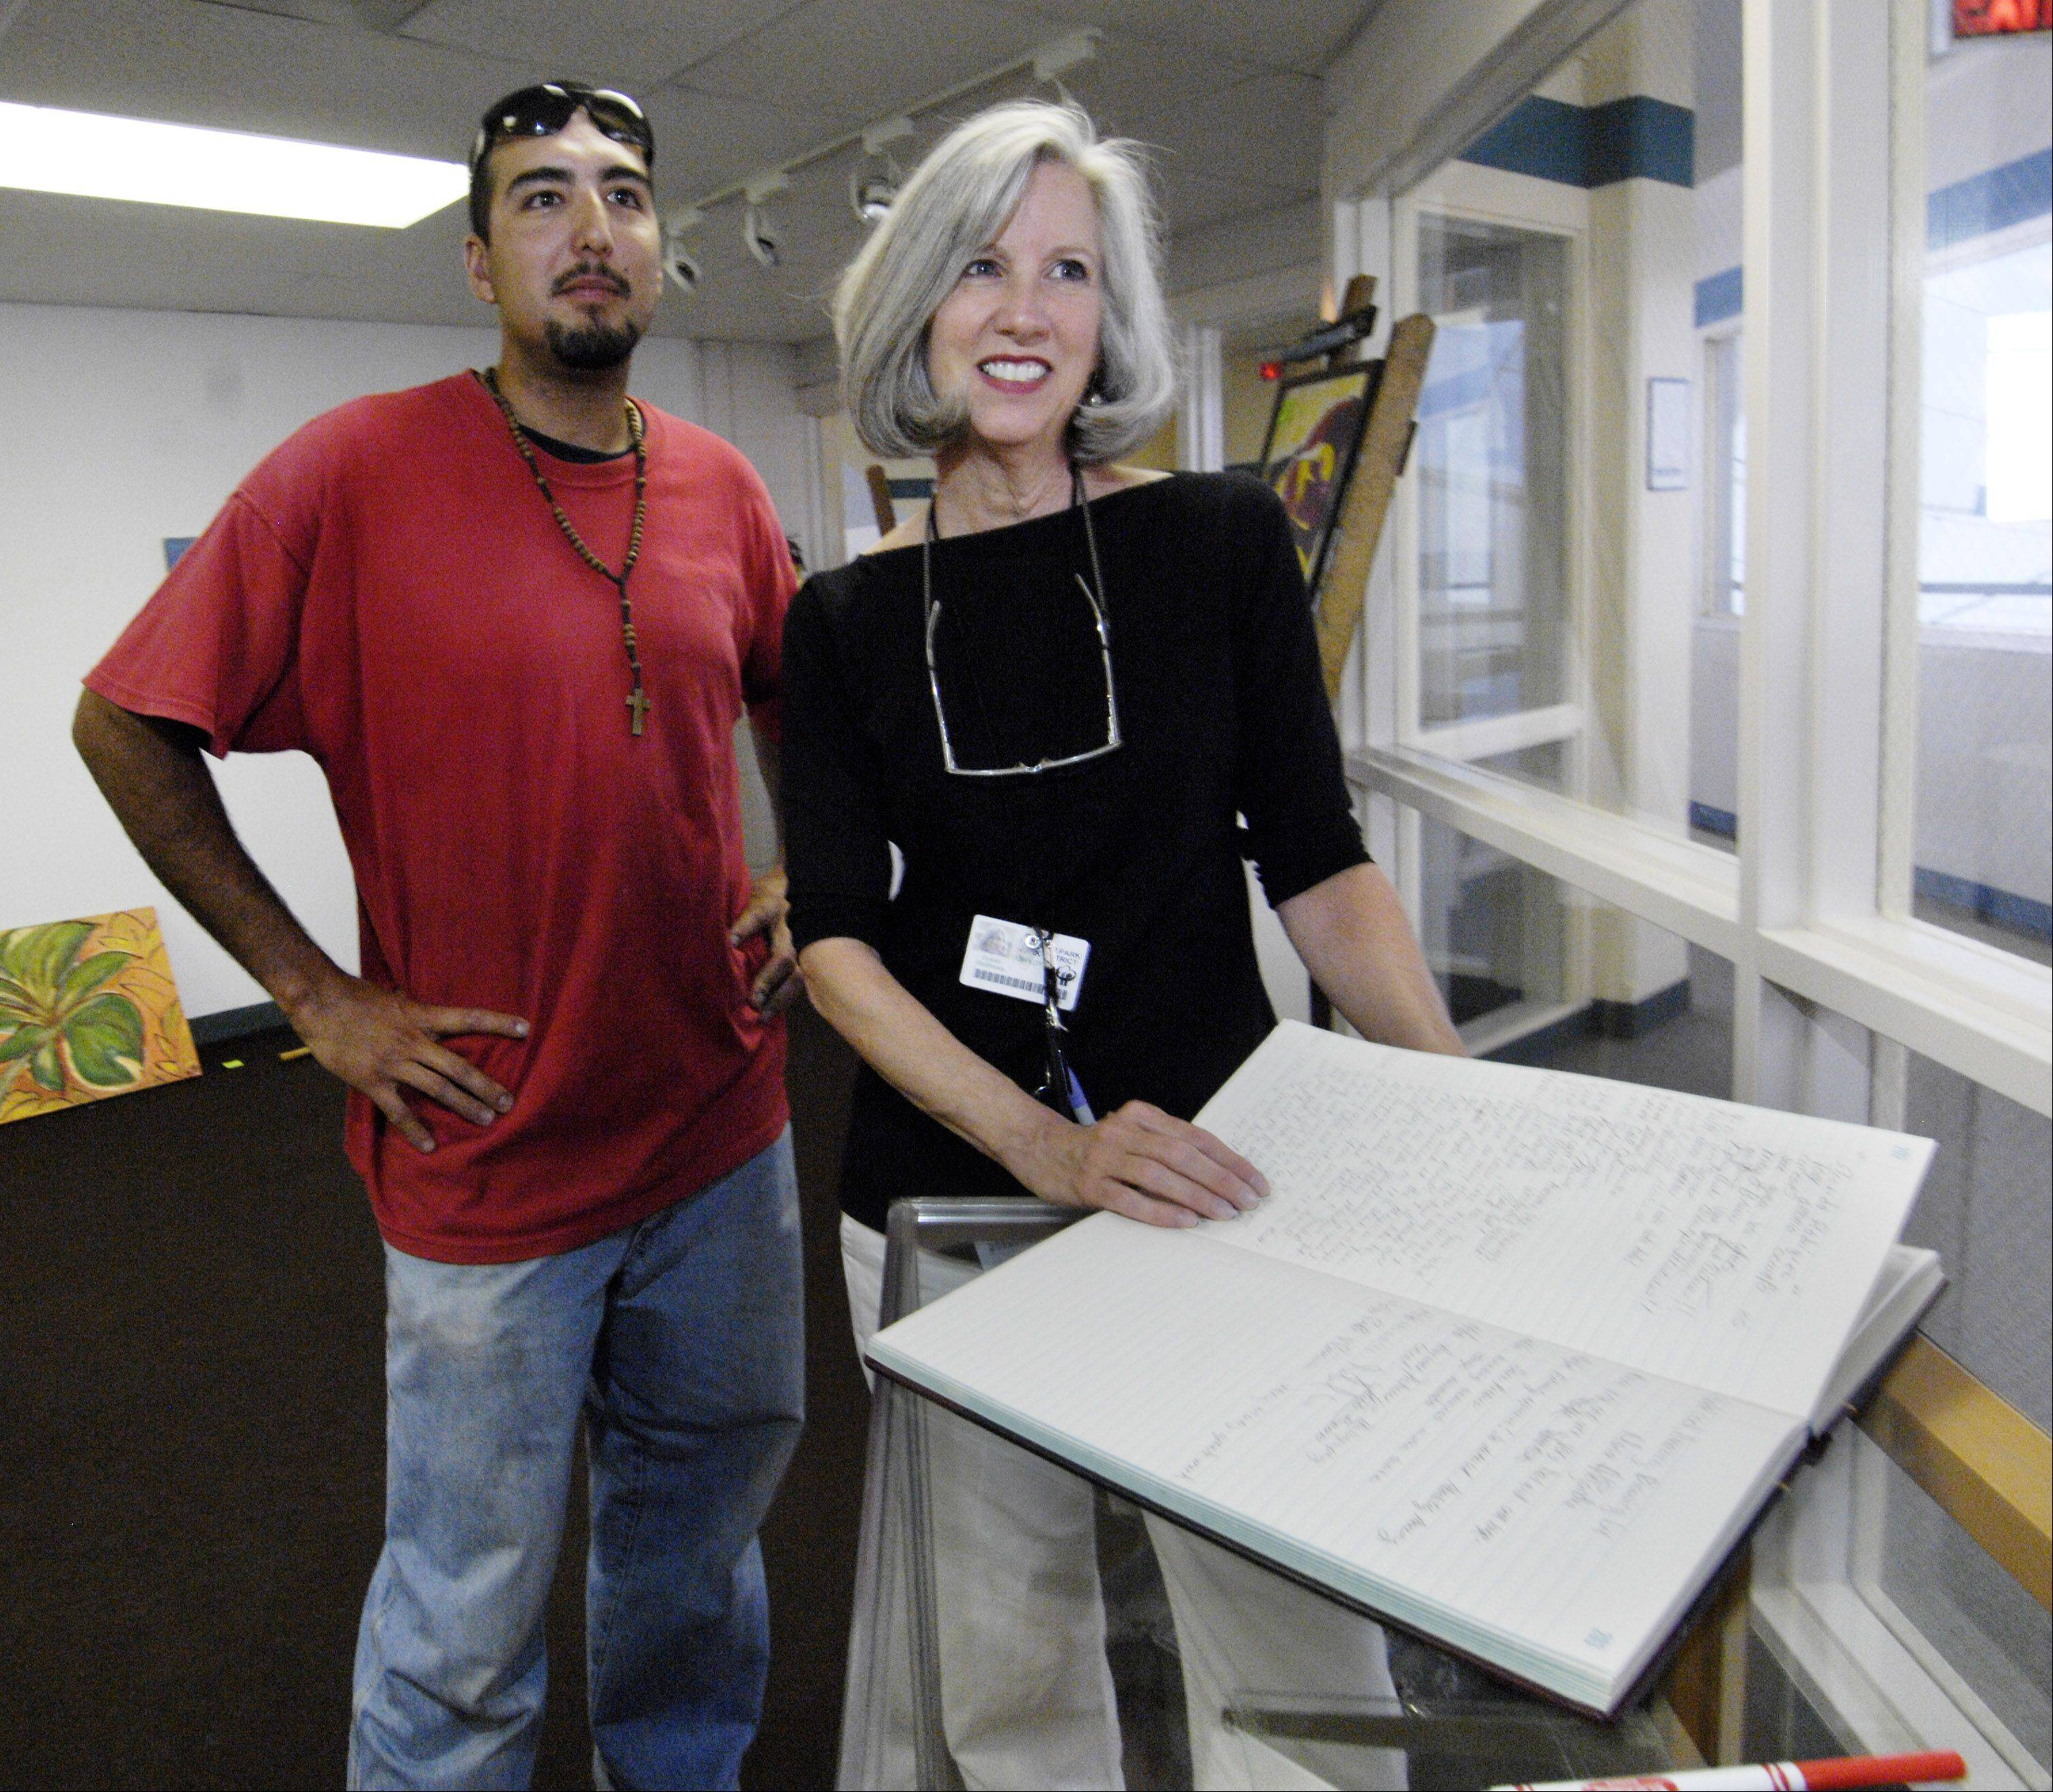 Self-taught artist and tree-trimmer Raul Maldonado of Hanover Park and curator Susan Matthews, arts coordinator for the Hanover Park Park District, look through guests' comments from Maldonado's first art show at the community gallery.